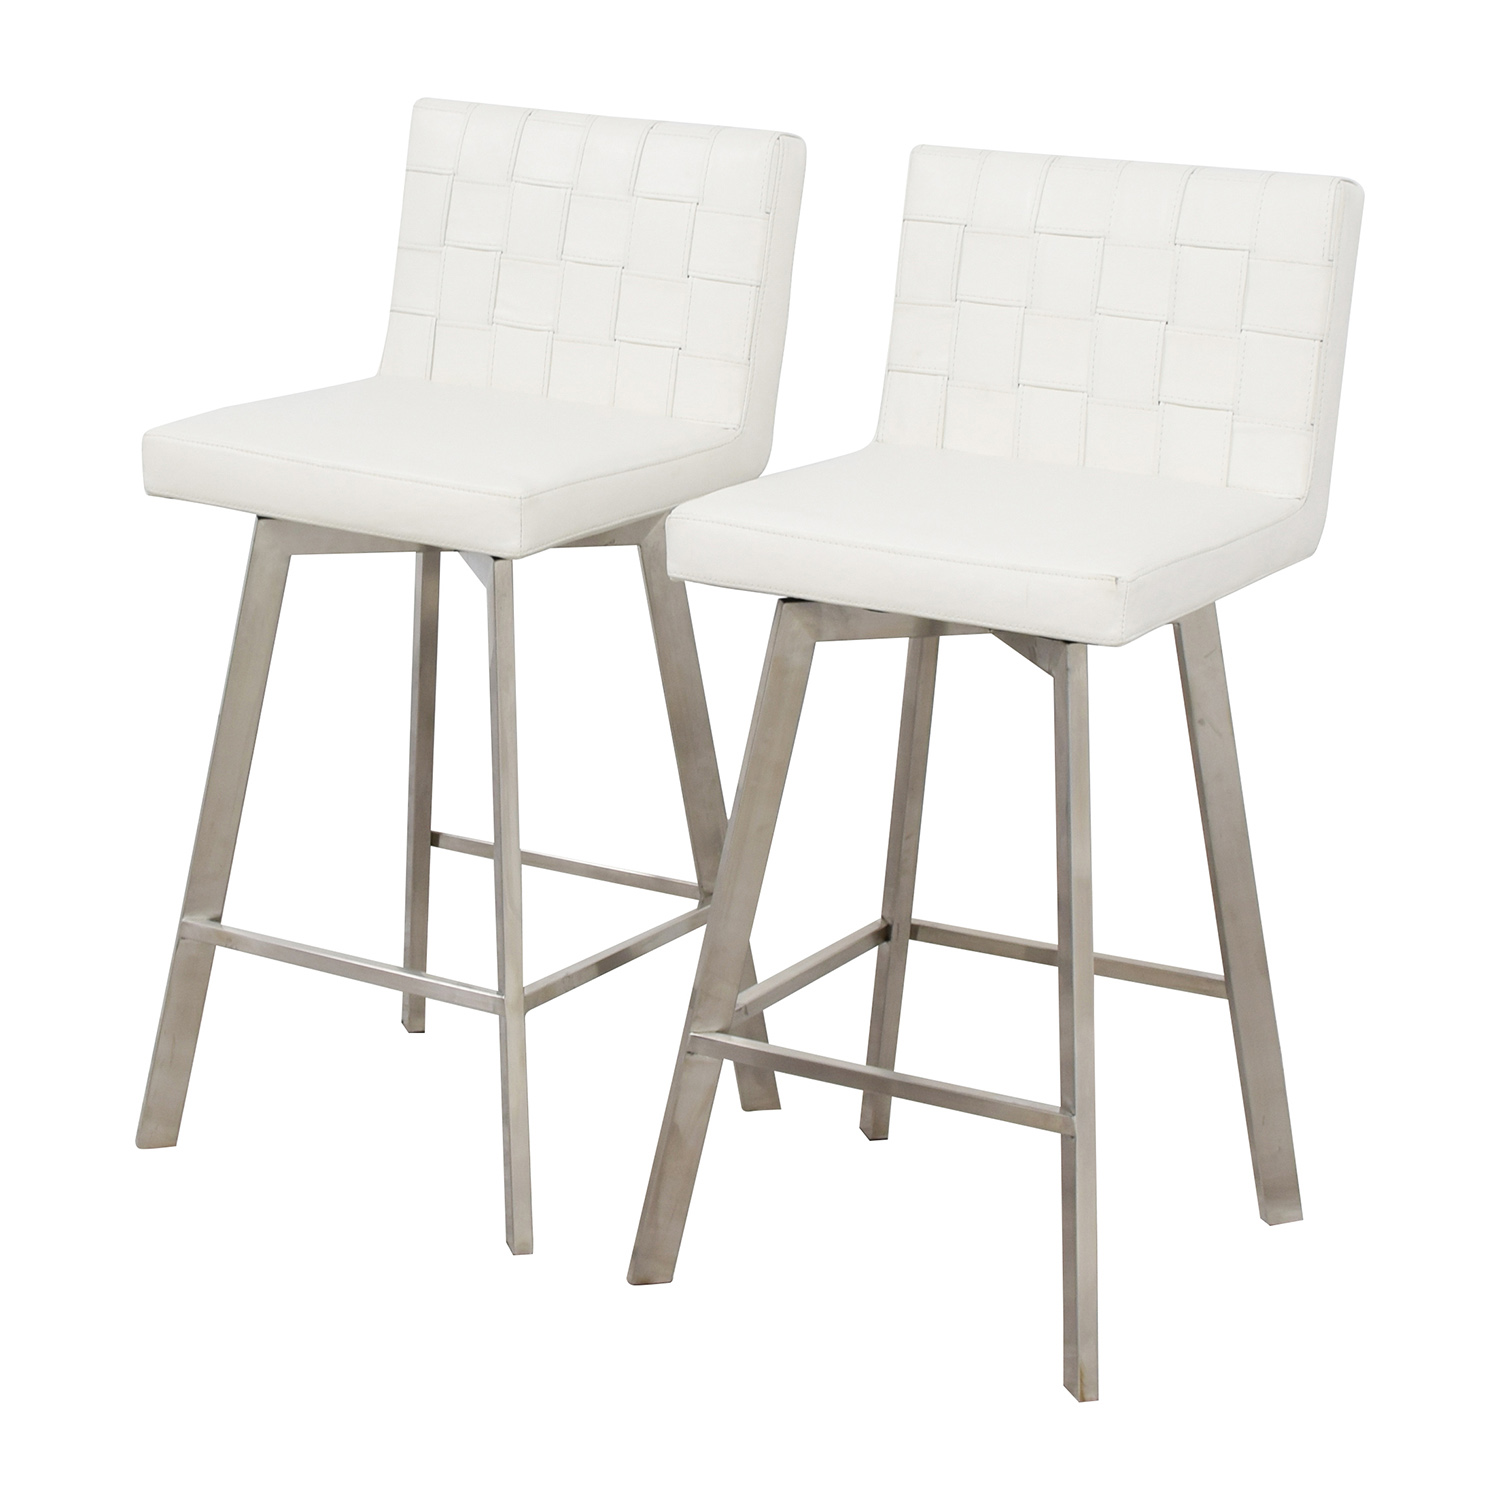 90 off inmod inmod constantine white bar stools chairs for In mod furniture